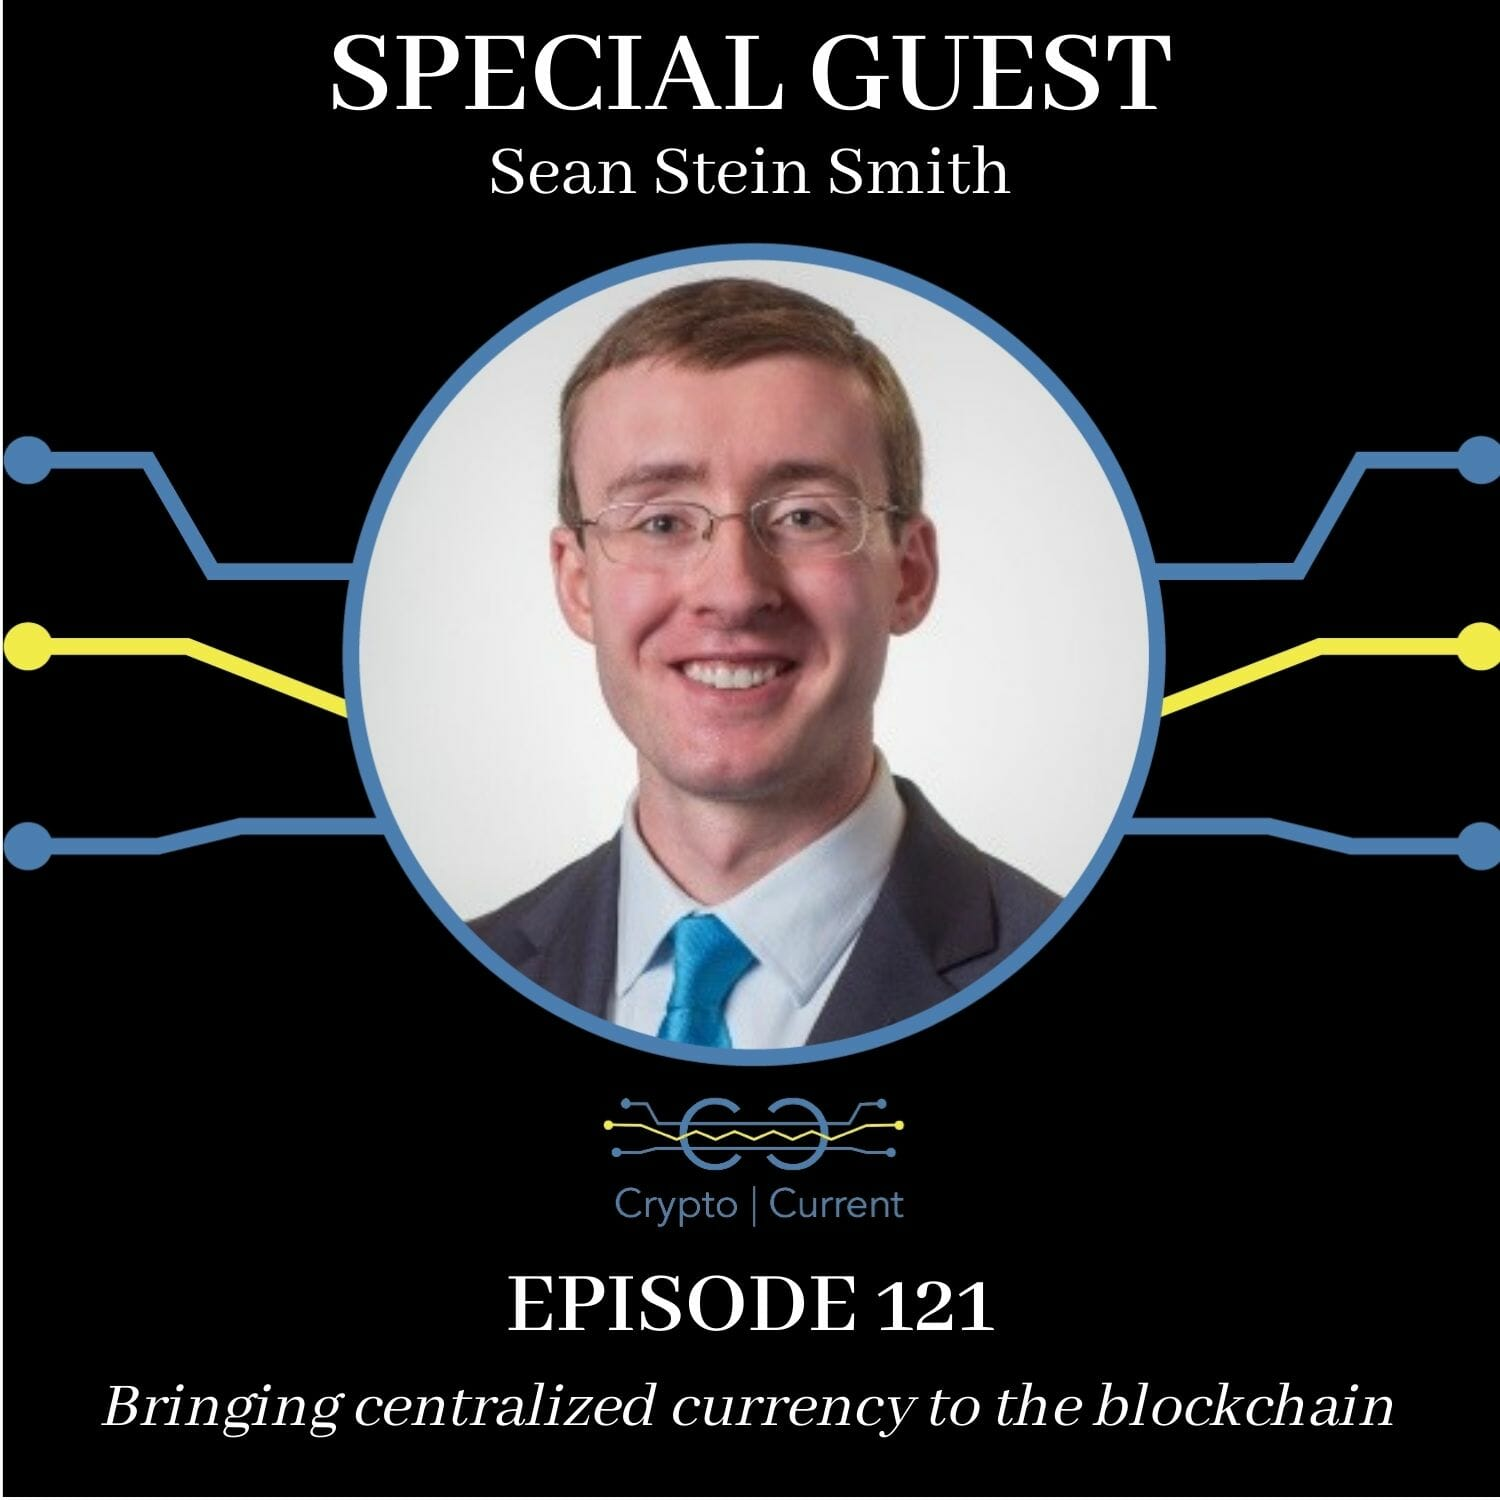 Bringing centralized currency to the blockchain